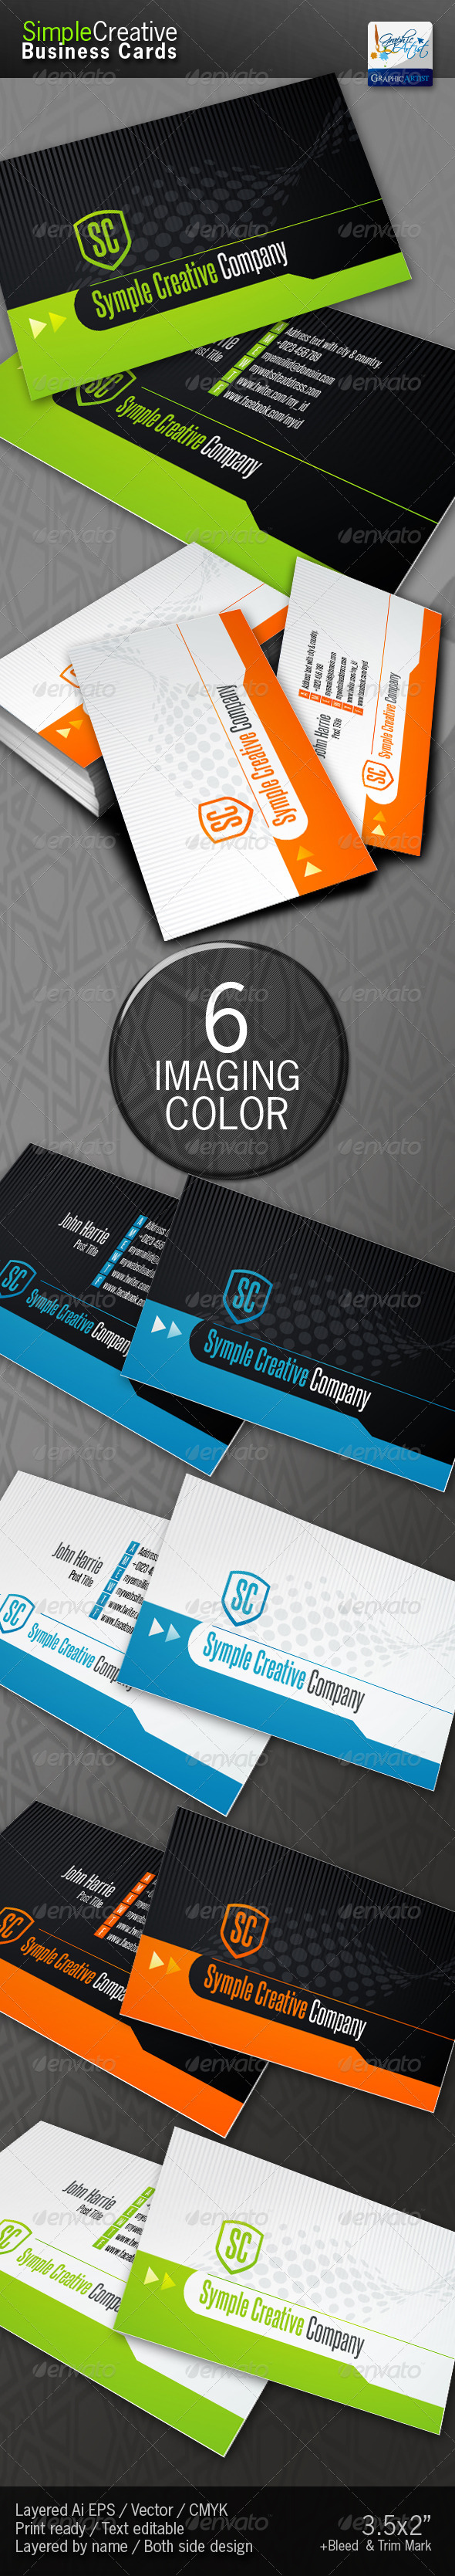 Simple Creative Business Cards - Corporate Business Cards